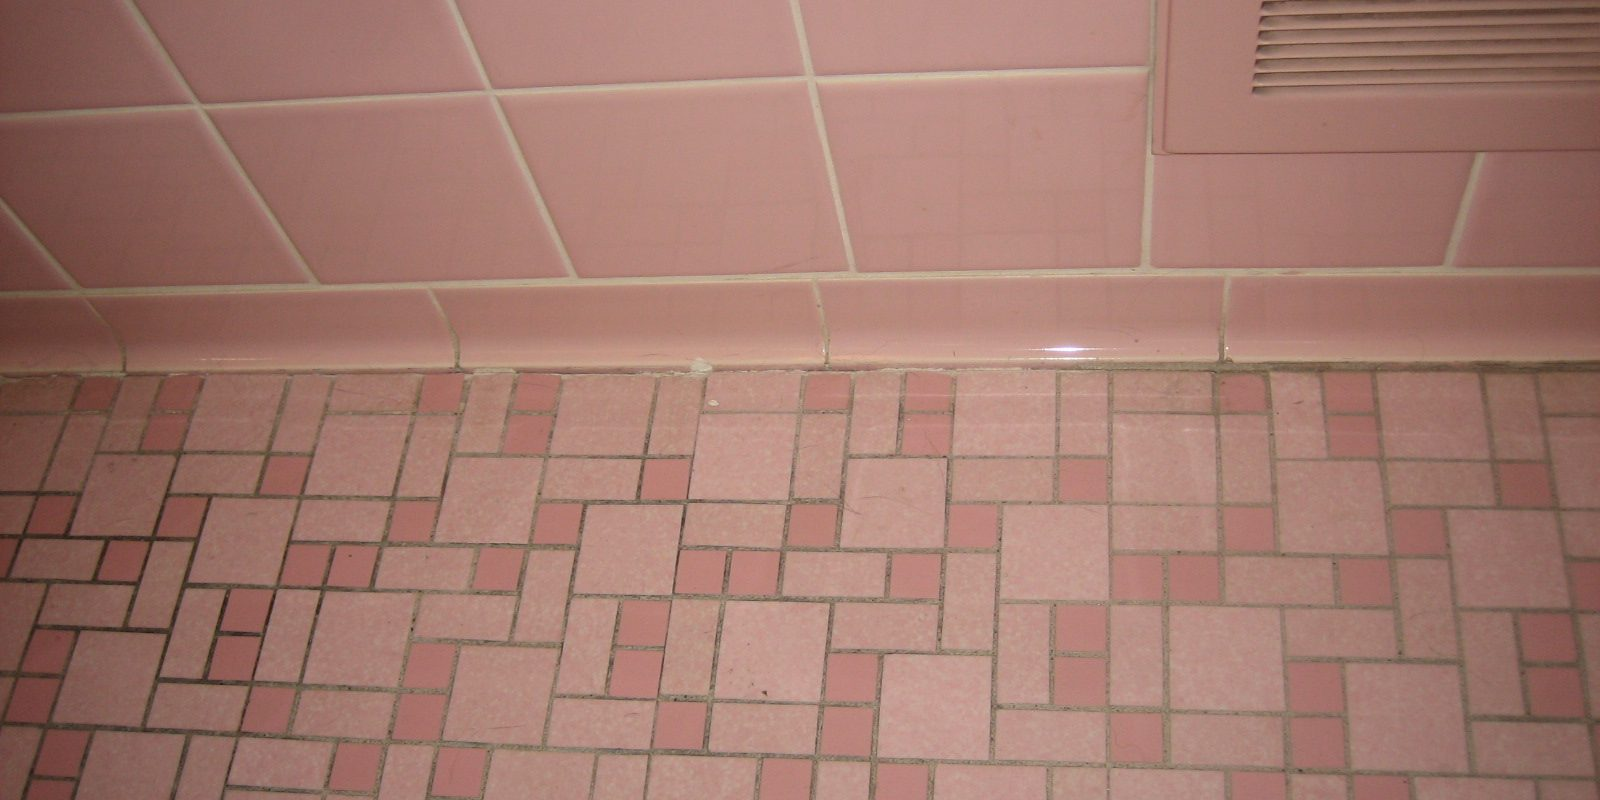 What Is The Trade Off With Painting Your Bathroom Tiles Building Inspections Sydney